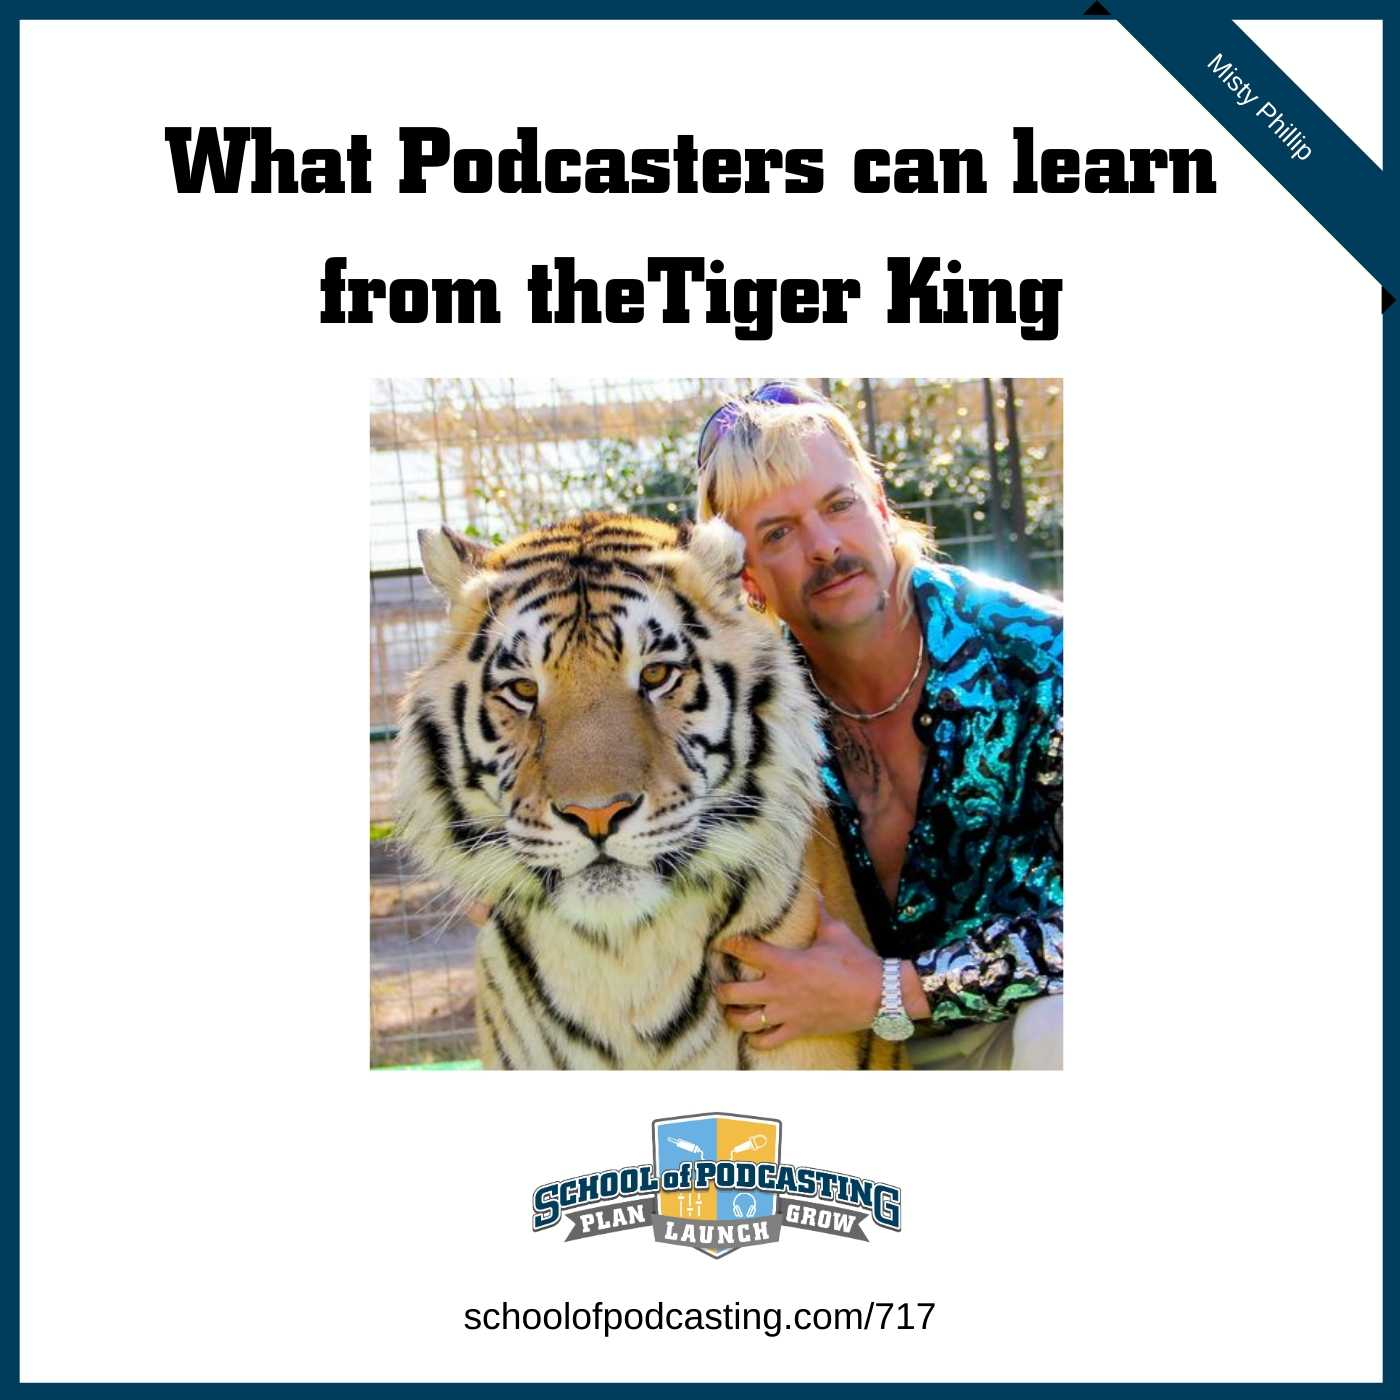 What podcasters can learn from the Tiger King